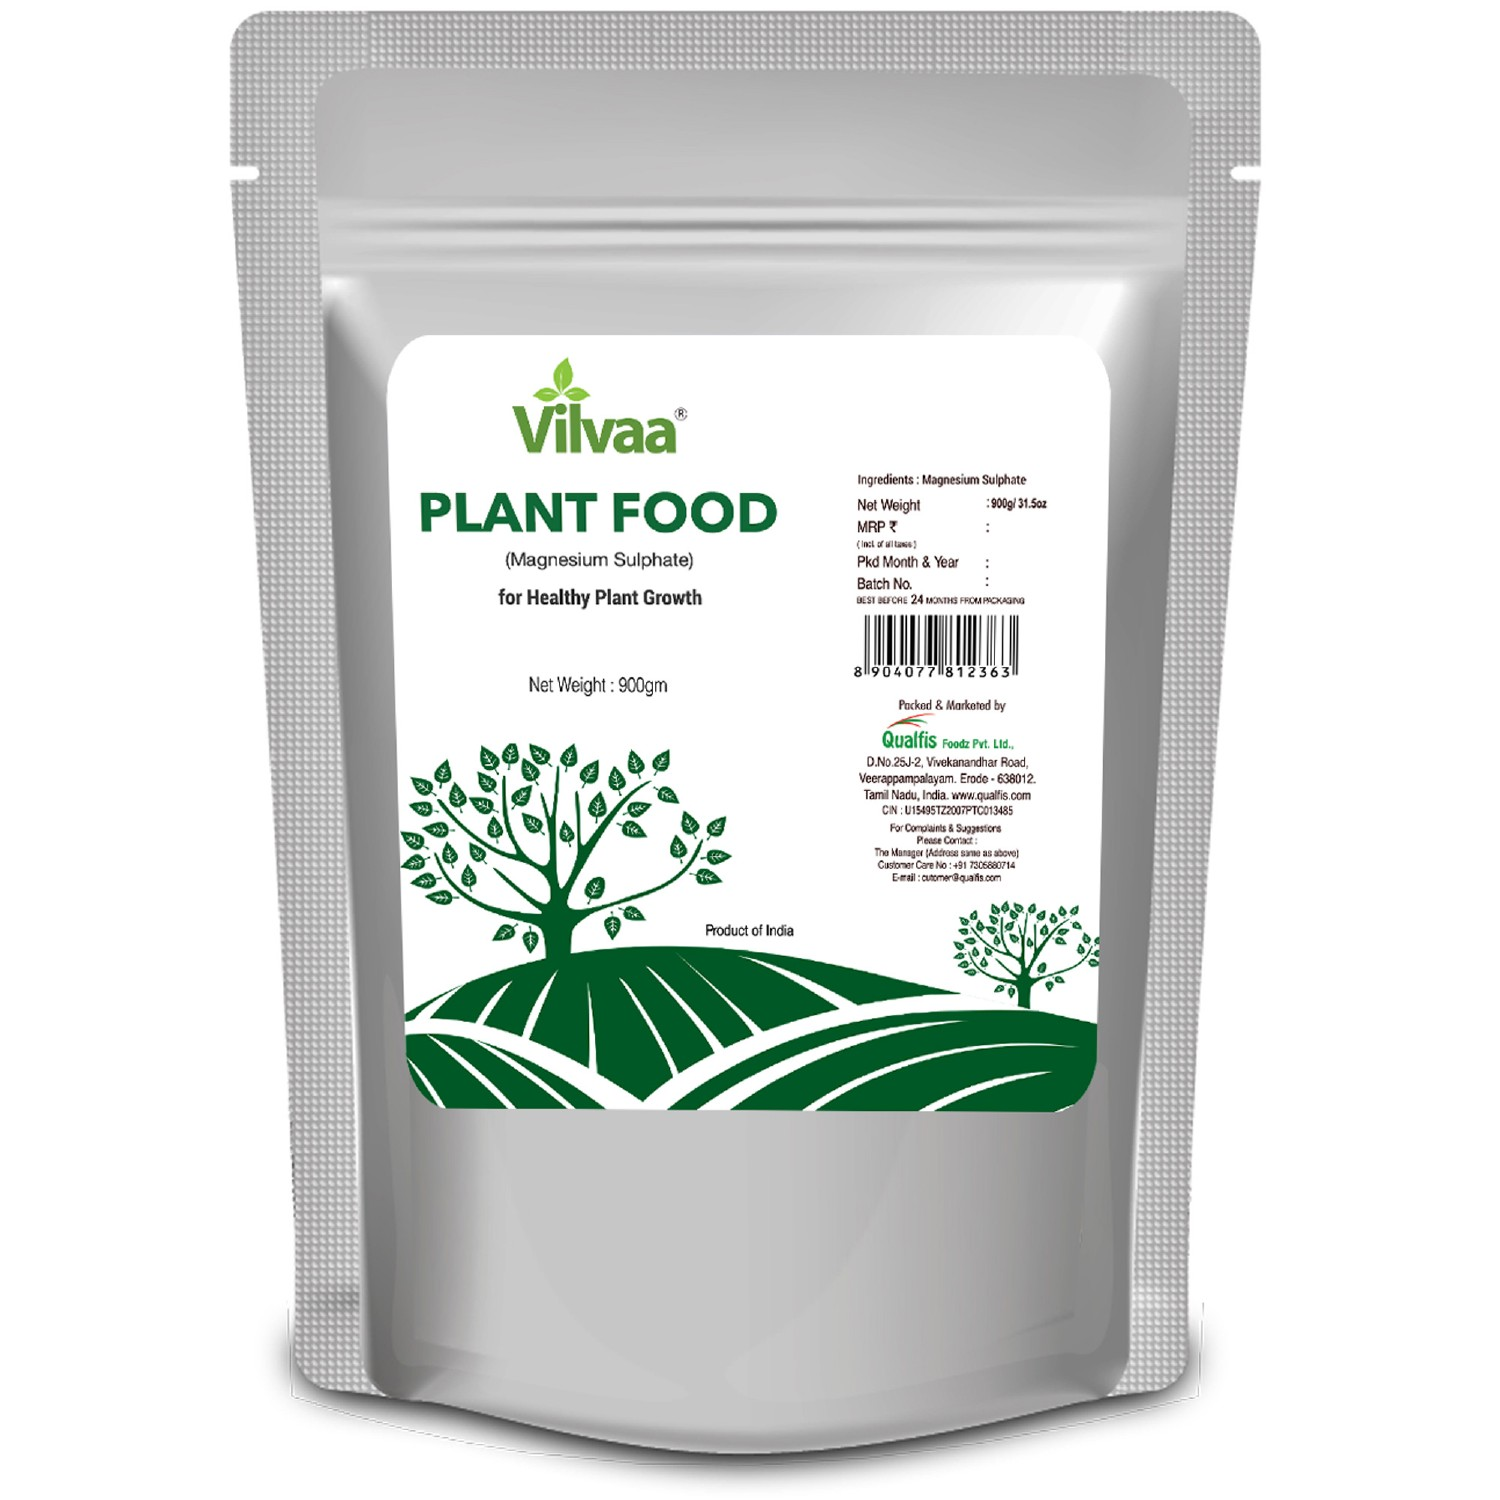 Vilvaa Plant Food ( Magnesium Sulphate ) 900g - For Healthy Plant Growth